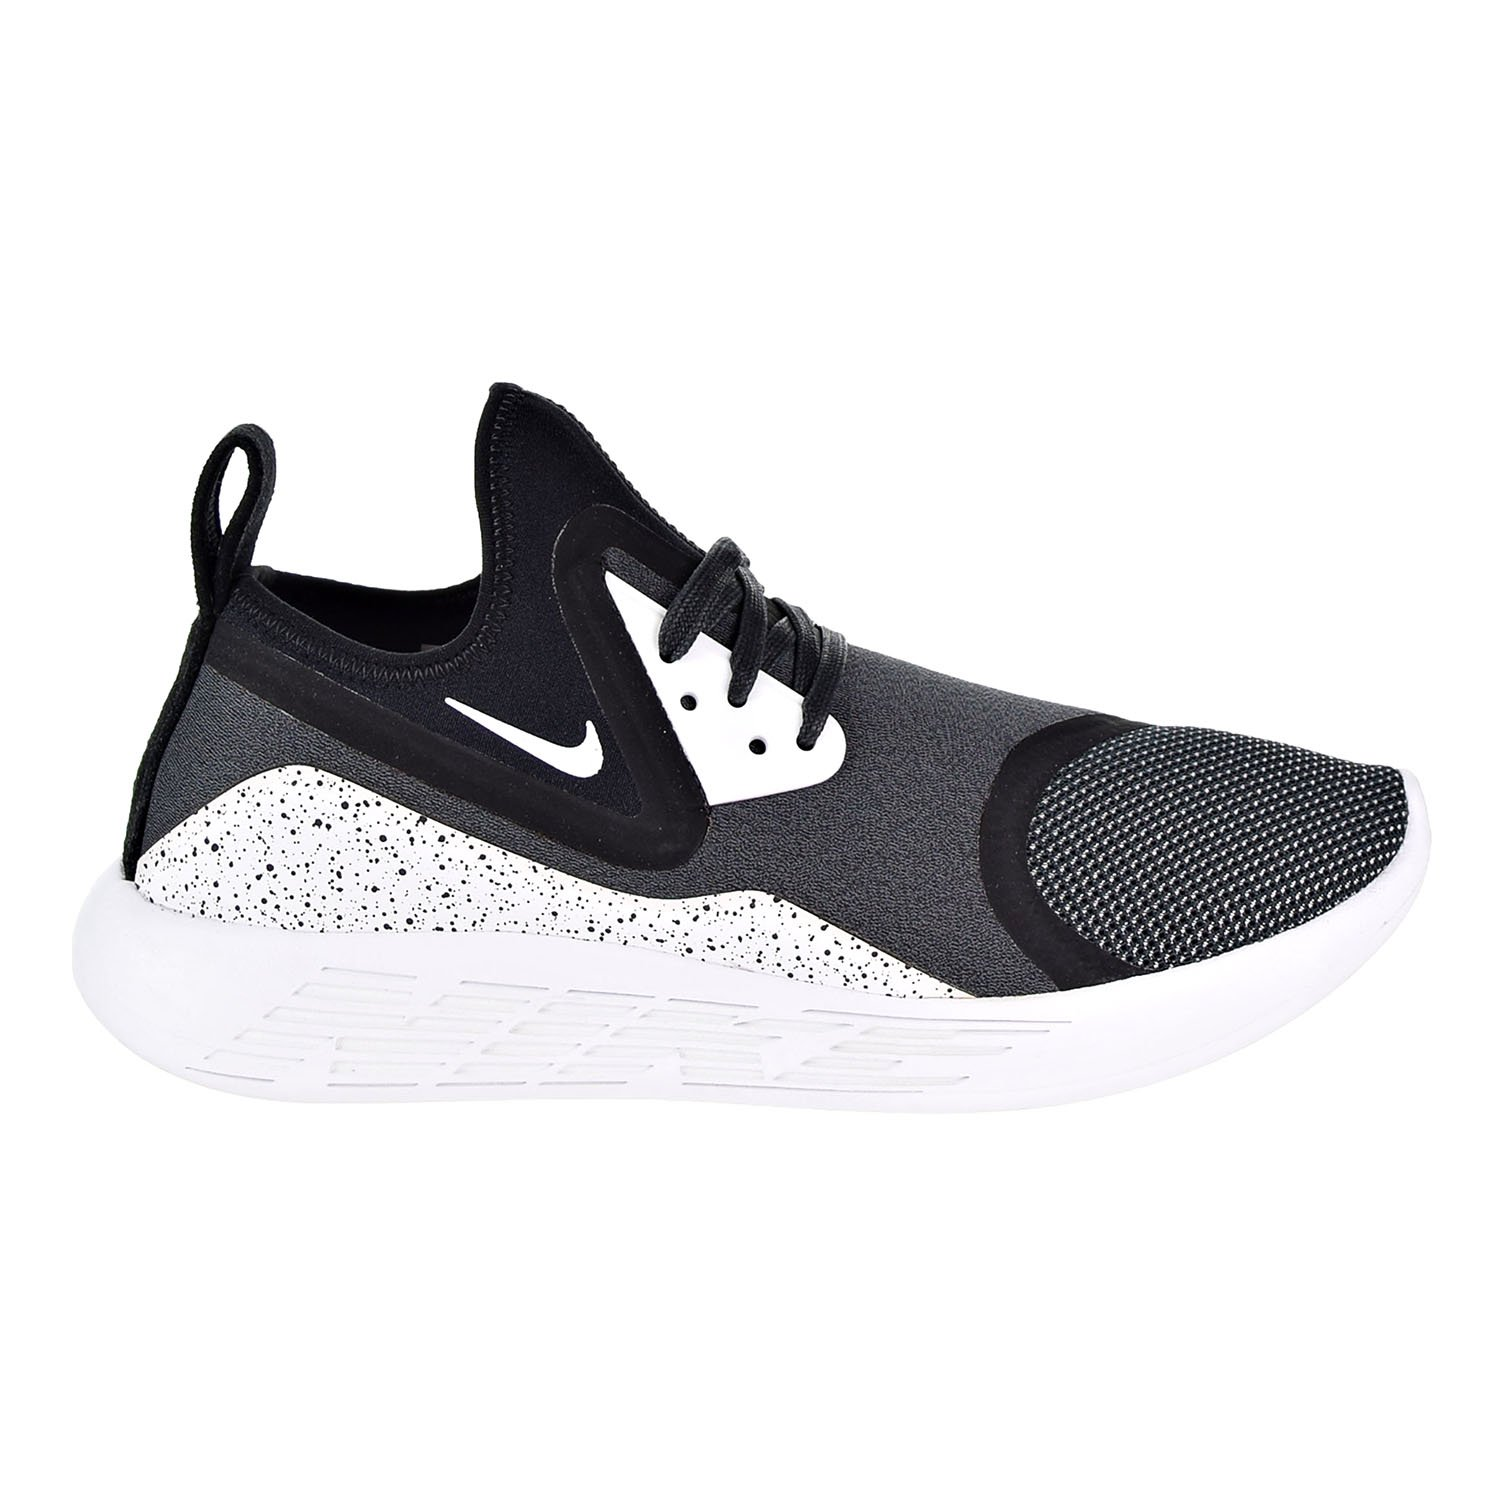 f456eae52421 Nike Lunarcharge Premium Le Men s Shoes Multi Color 923284-999 (9.5 D(M)  US)  Amazon.co.uk  Shoes   Bags